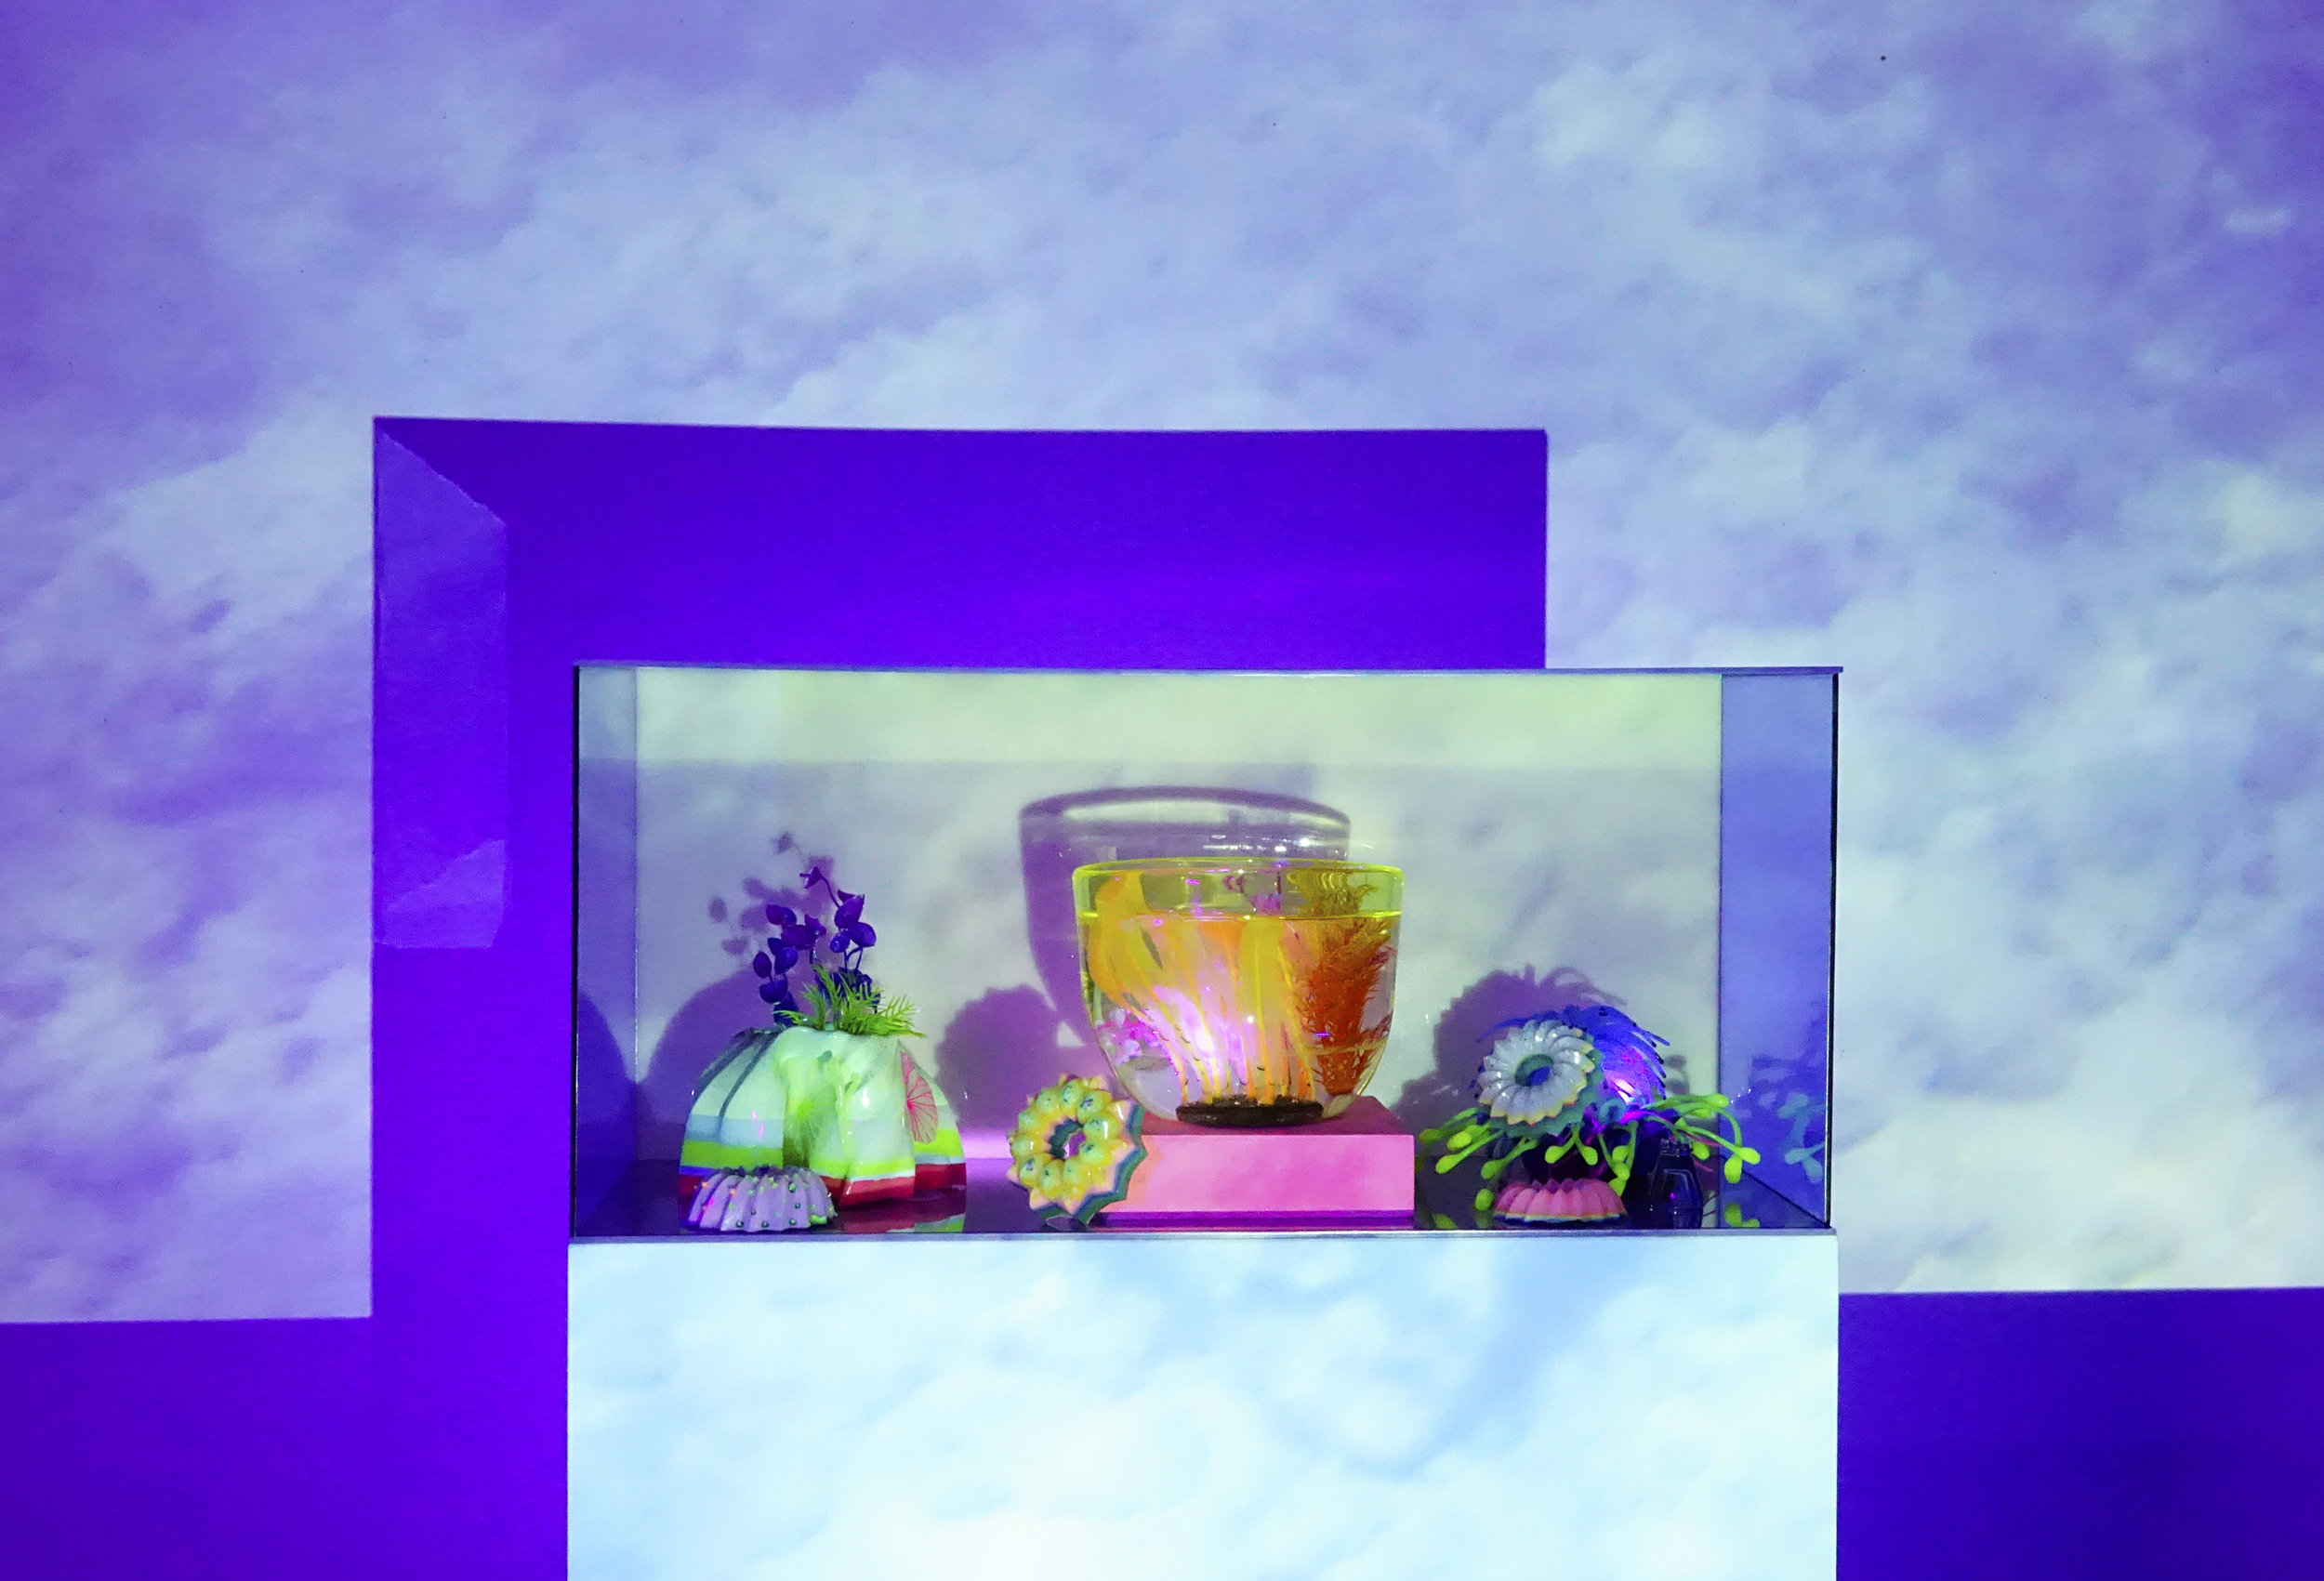 Lena+Daly+-+'Night+Dive,'+2019+-+Video+and+Ultrasound+projection,+UV‐reactive+paint,+wood+pedestals,+uranium+glass,+UV‐reactive+flock,+HD+projector,+HSS+speaker,+plexiglass,+and+LED+UV+light,+dimensions+variable+-+2 (1).jpg